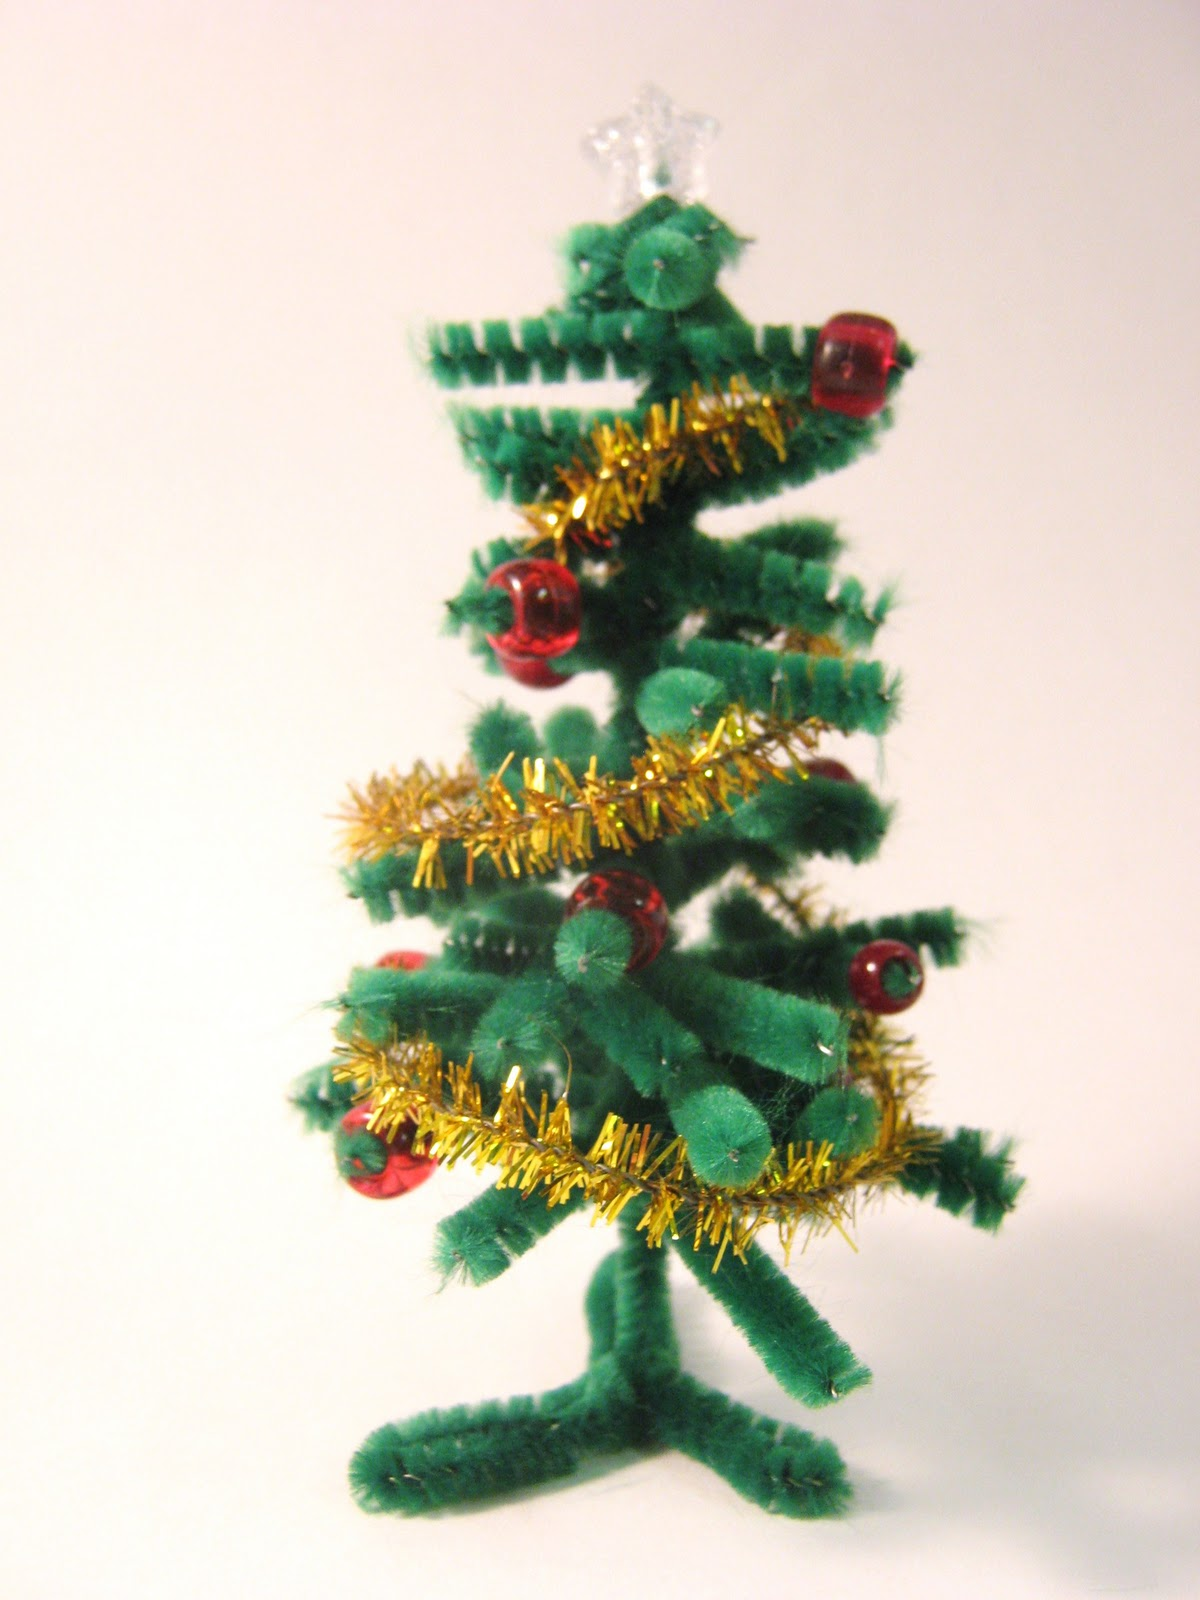 The Craft-Arty Kid (Old blog): Pipe cleaner Christmas tree